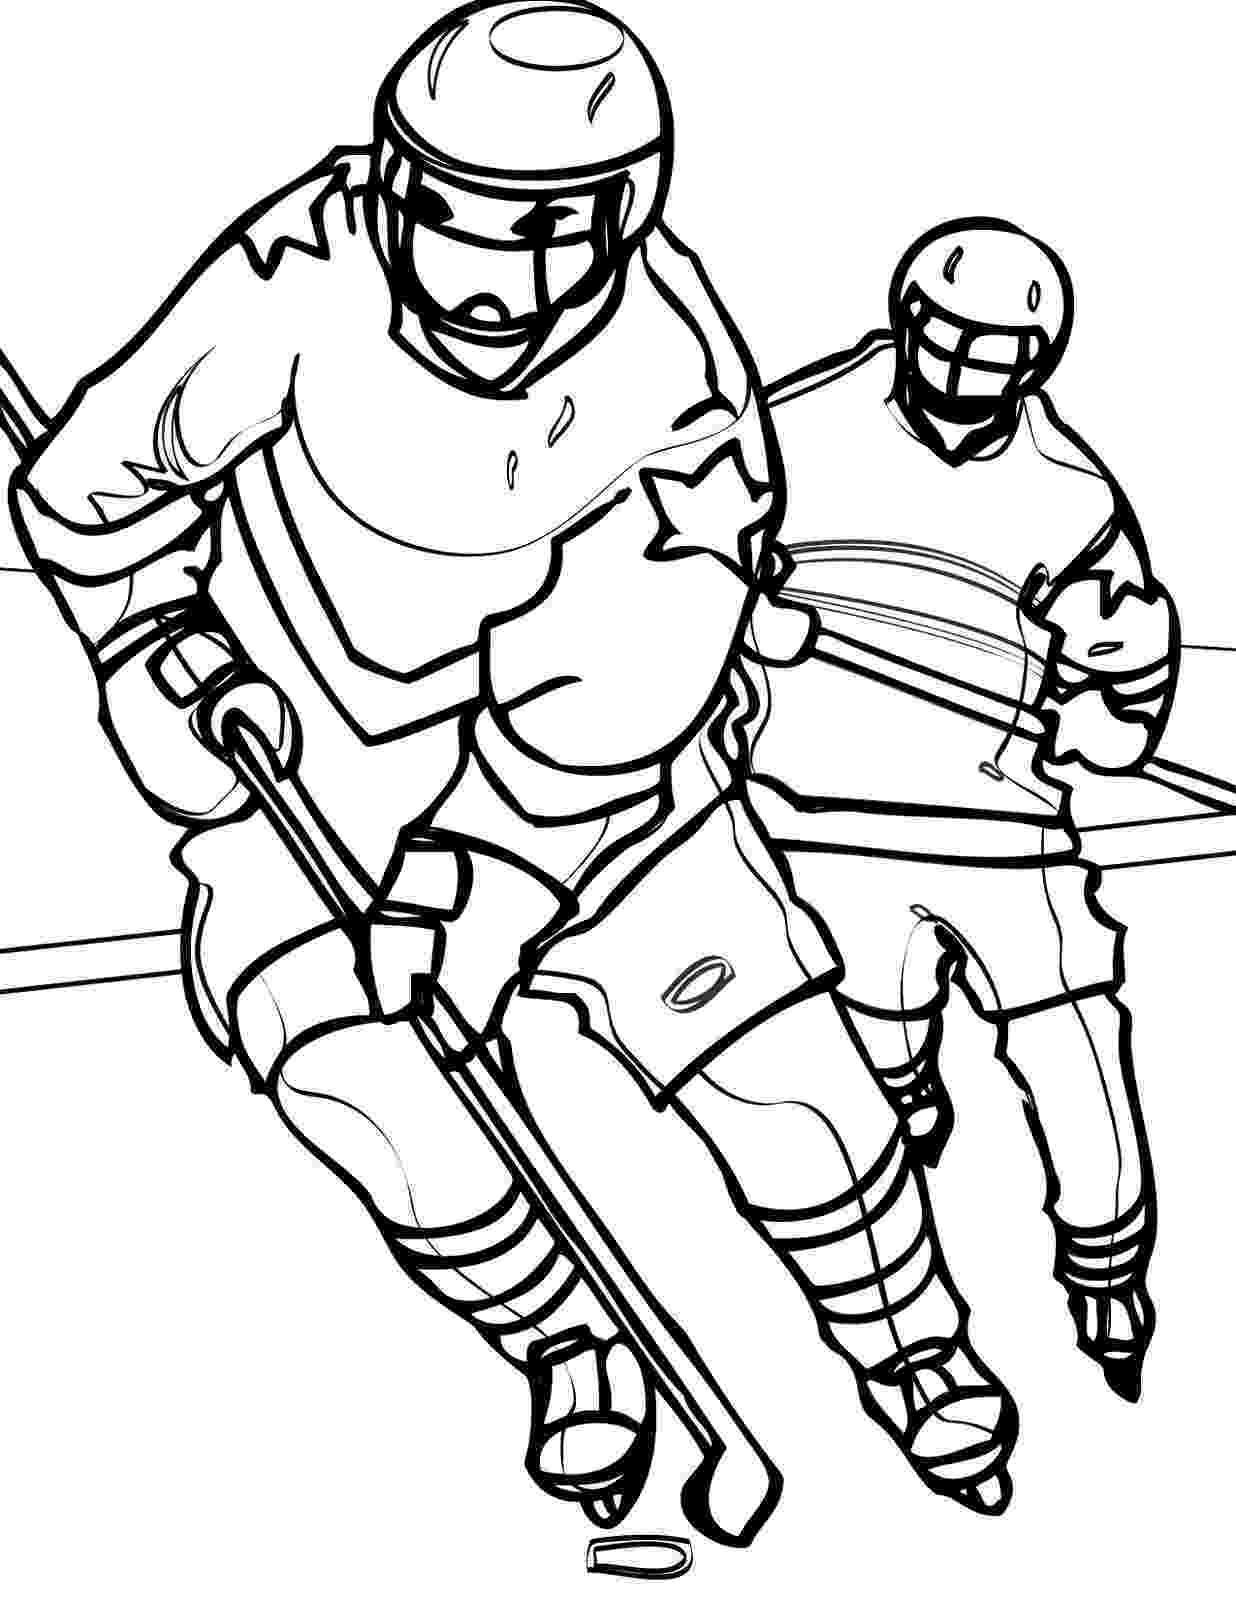 kids sports coloring pages 121 sports coloring sheets customize and print pdf pages sports coloring kids